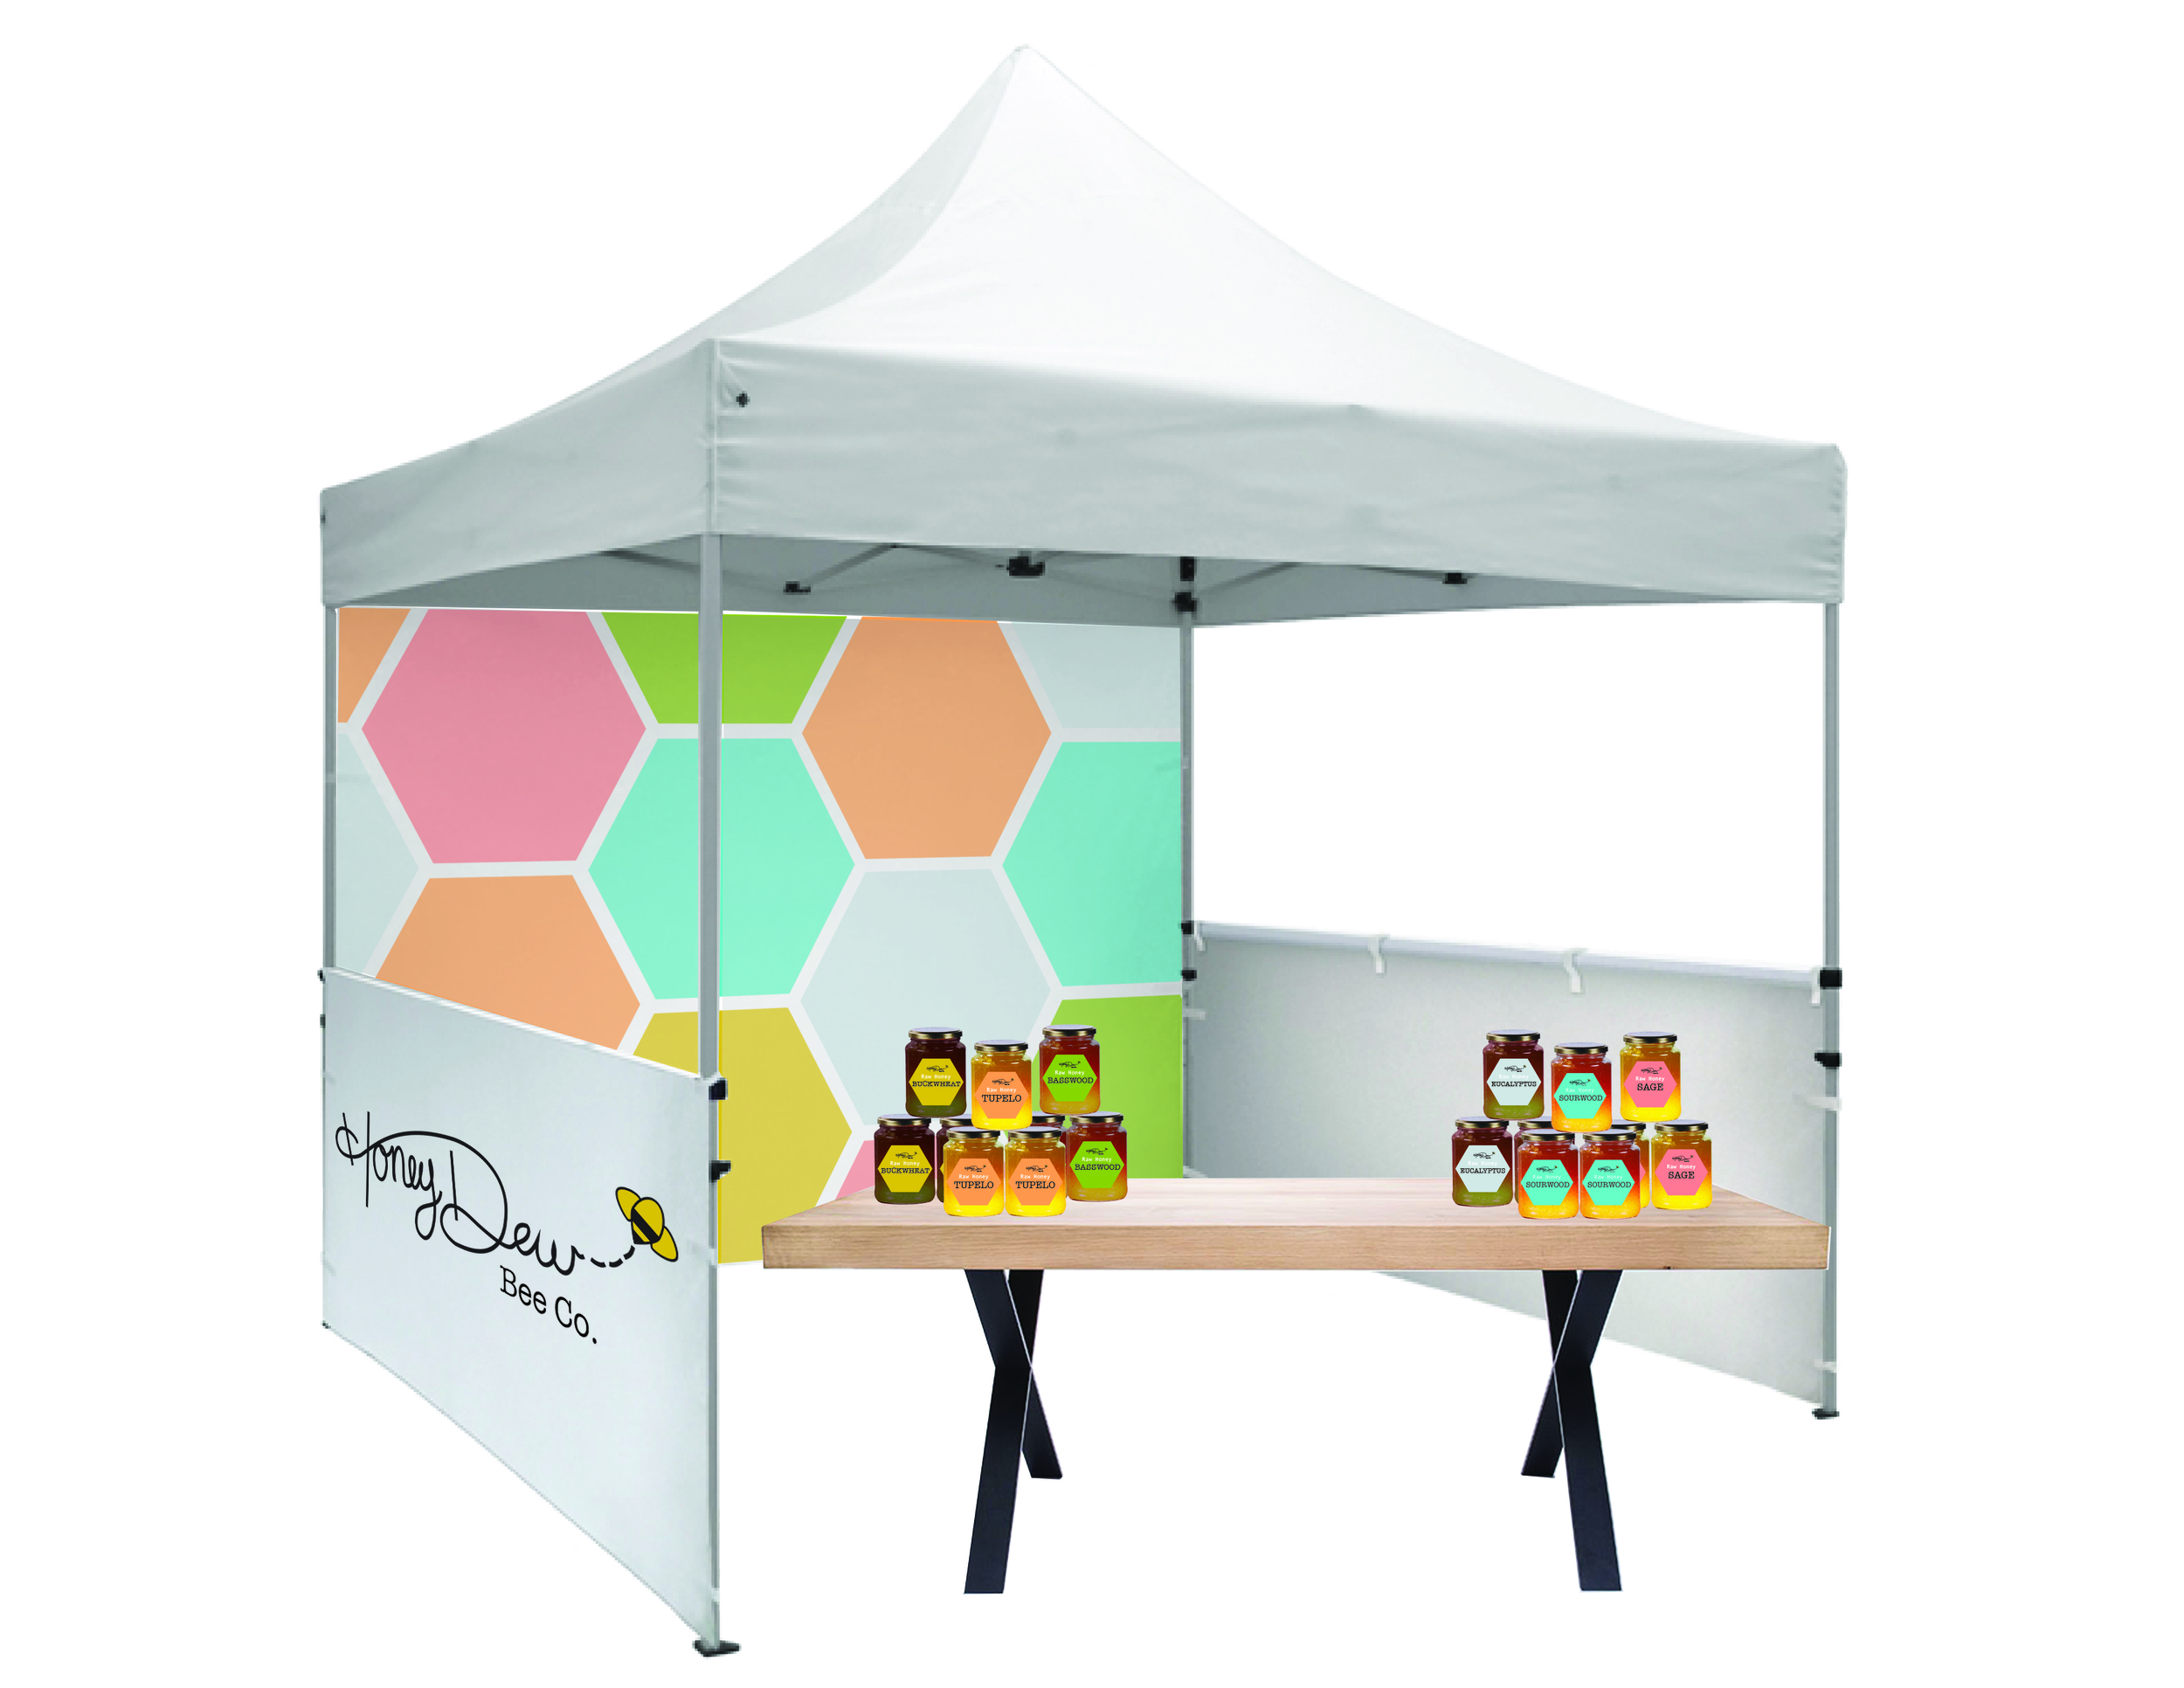 Another advertising tactic for Honey Dew Bee Co. would be to attend local farmers markets where they can sell their honey and bring awareness to their business by making personal connections with potential buyers. Honey Dew would have their own labels for their honey and their own personalized vendors tent.